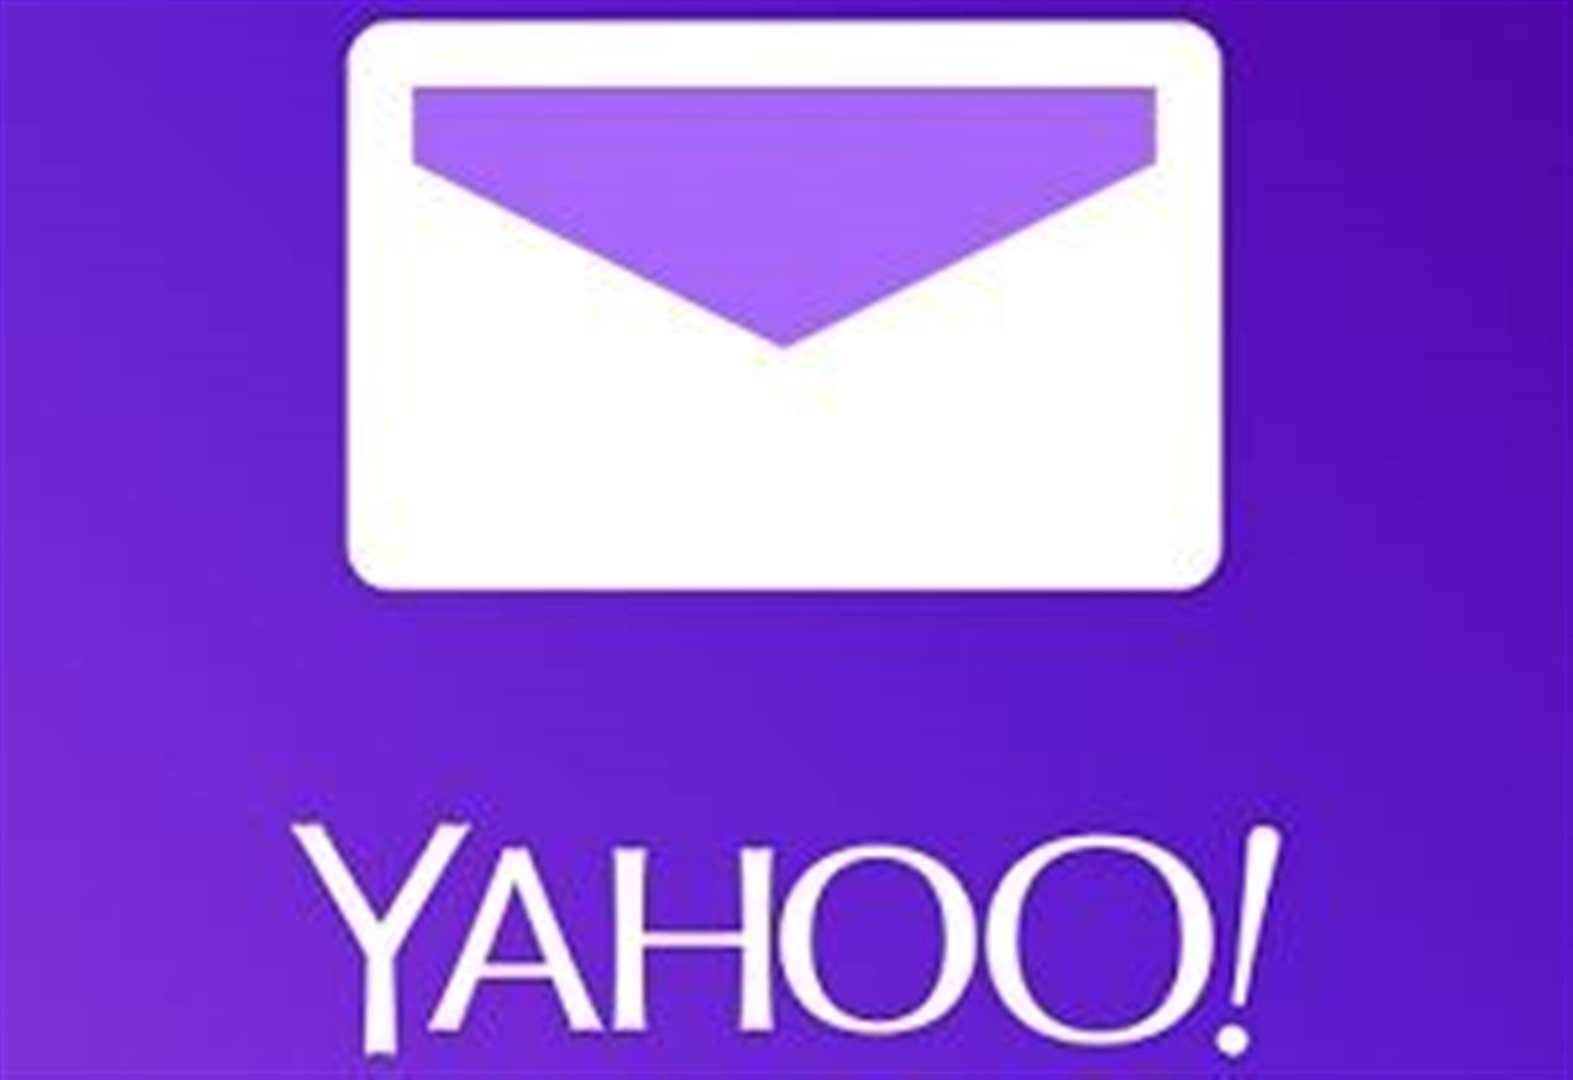 Yahoo! email service down